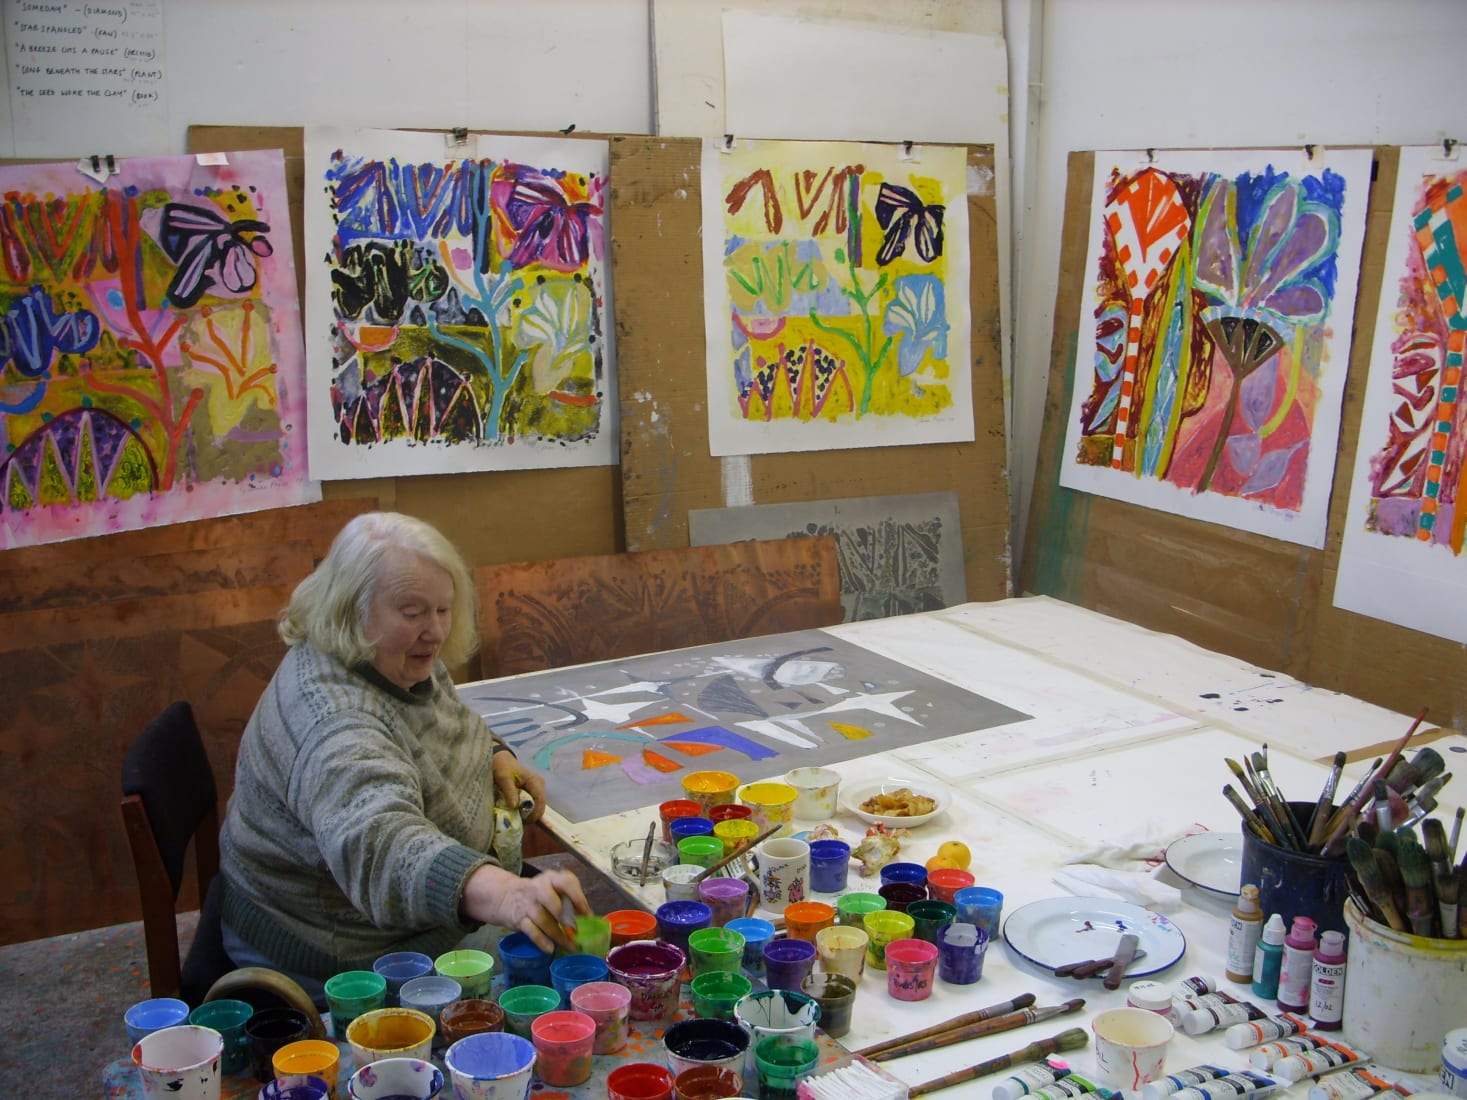 <p>Gillian Ayres at 107 Workshop, Wiltshire, 2010. Photo: Andrew Smith</p>